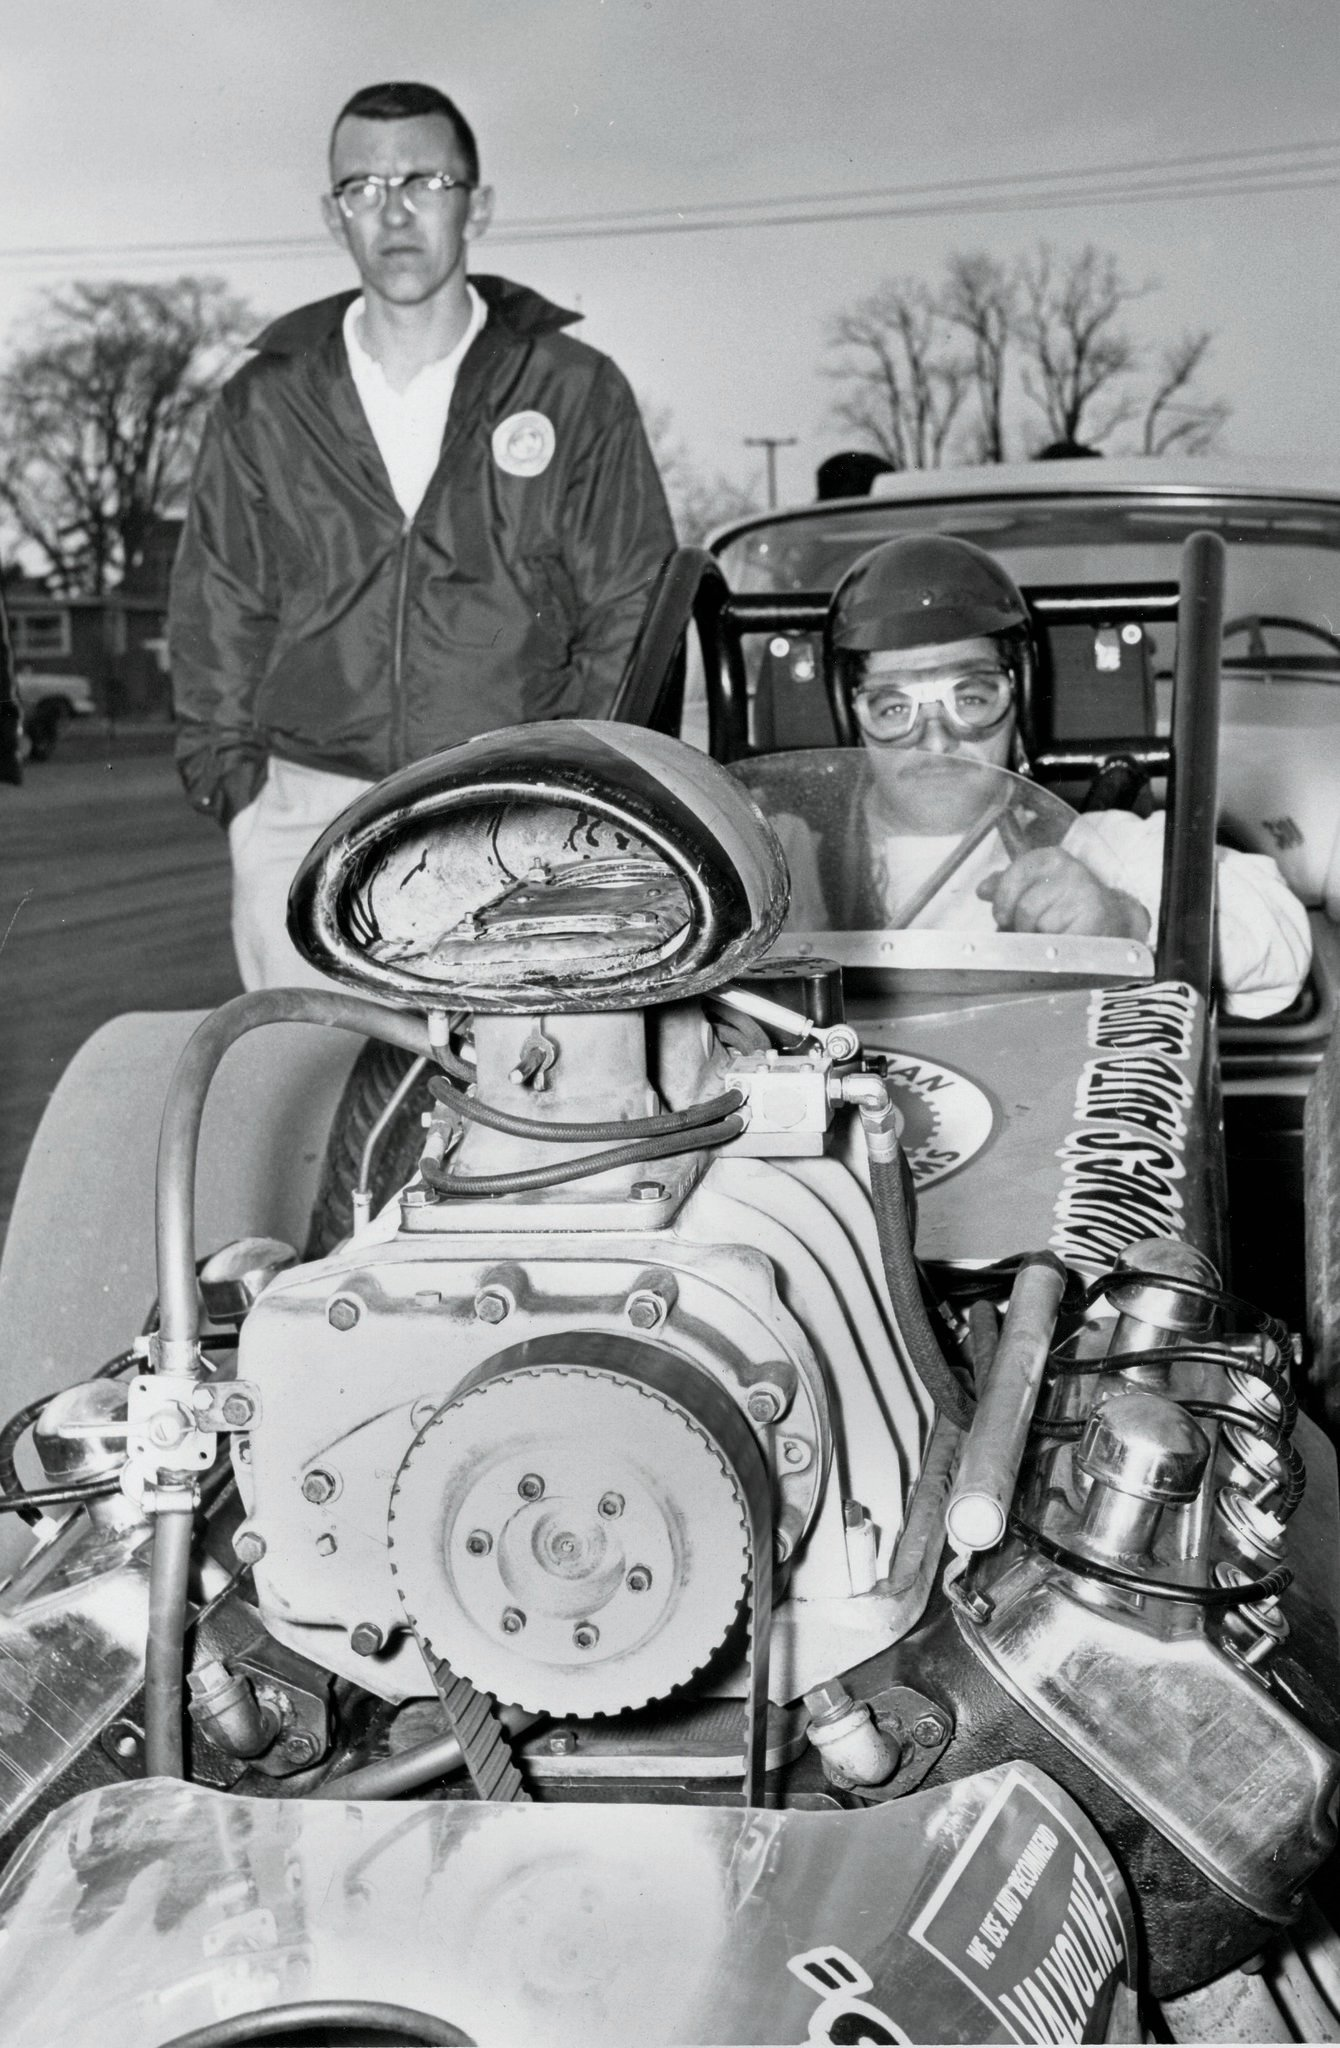 Strapped in and ready to go at Detroit Dragway in the early 1960s.